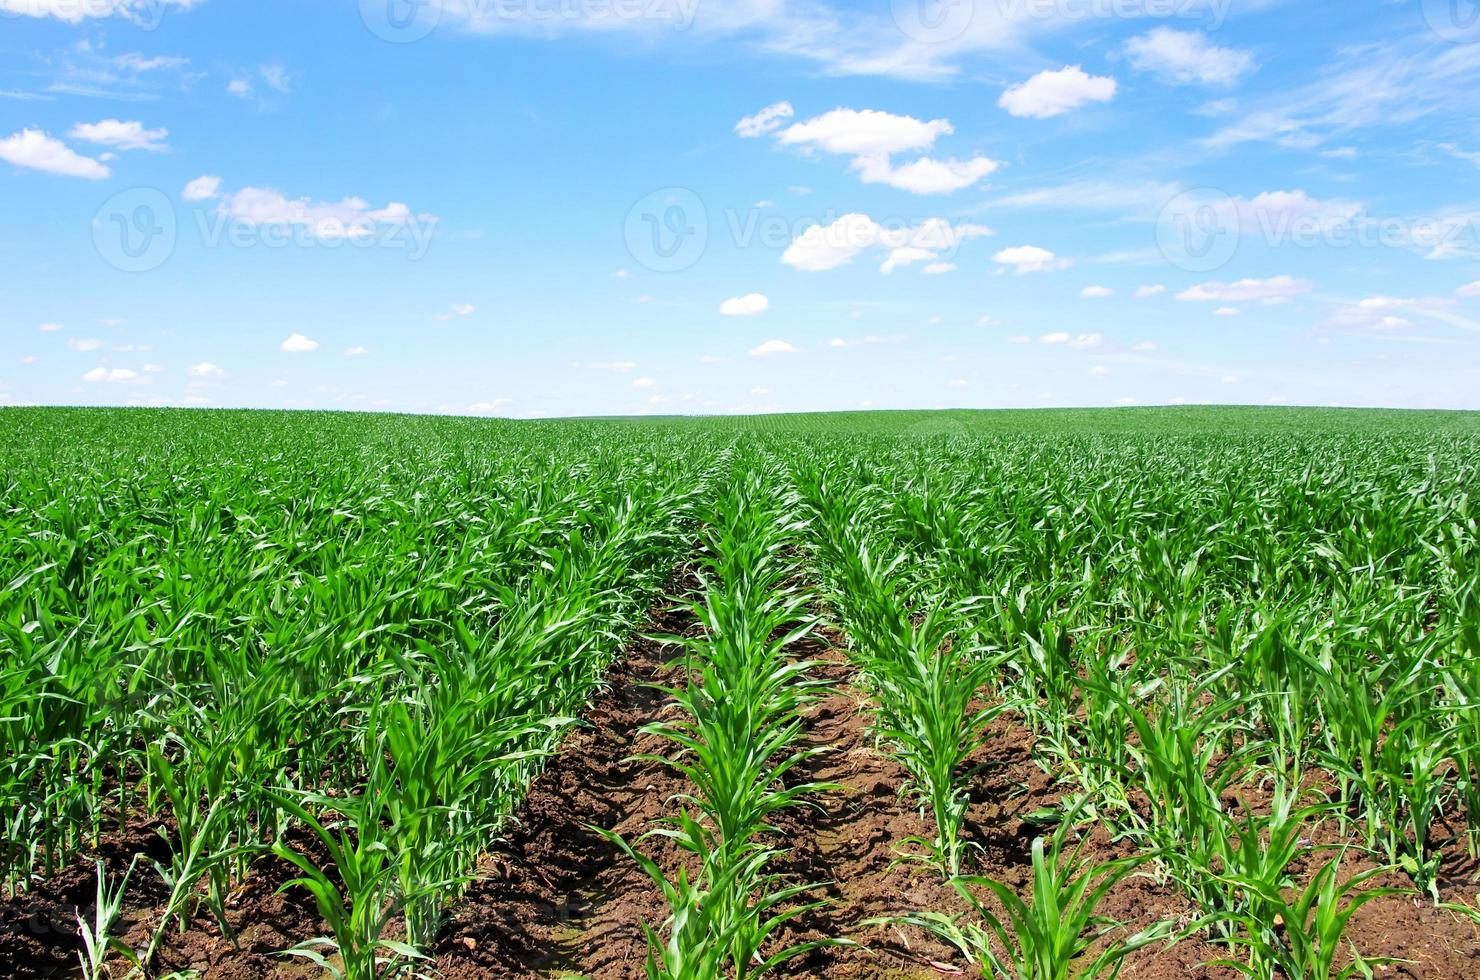 cornfield at south of Portugal photo